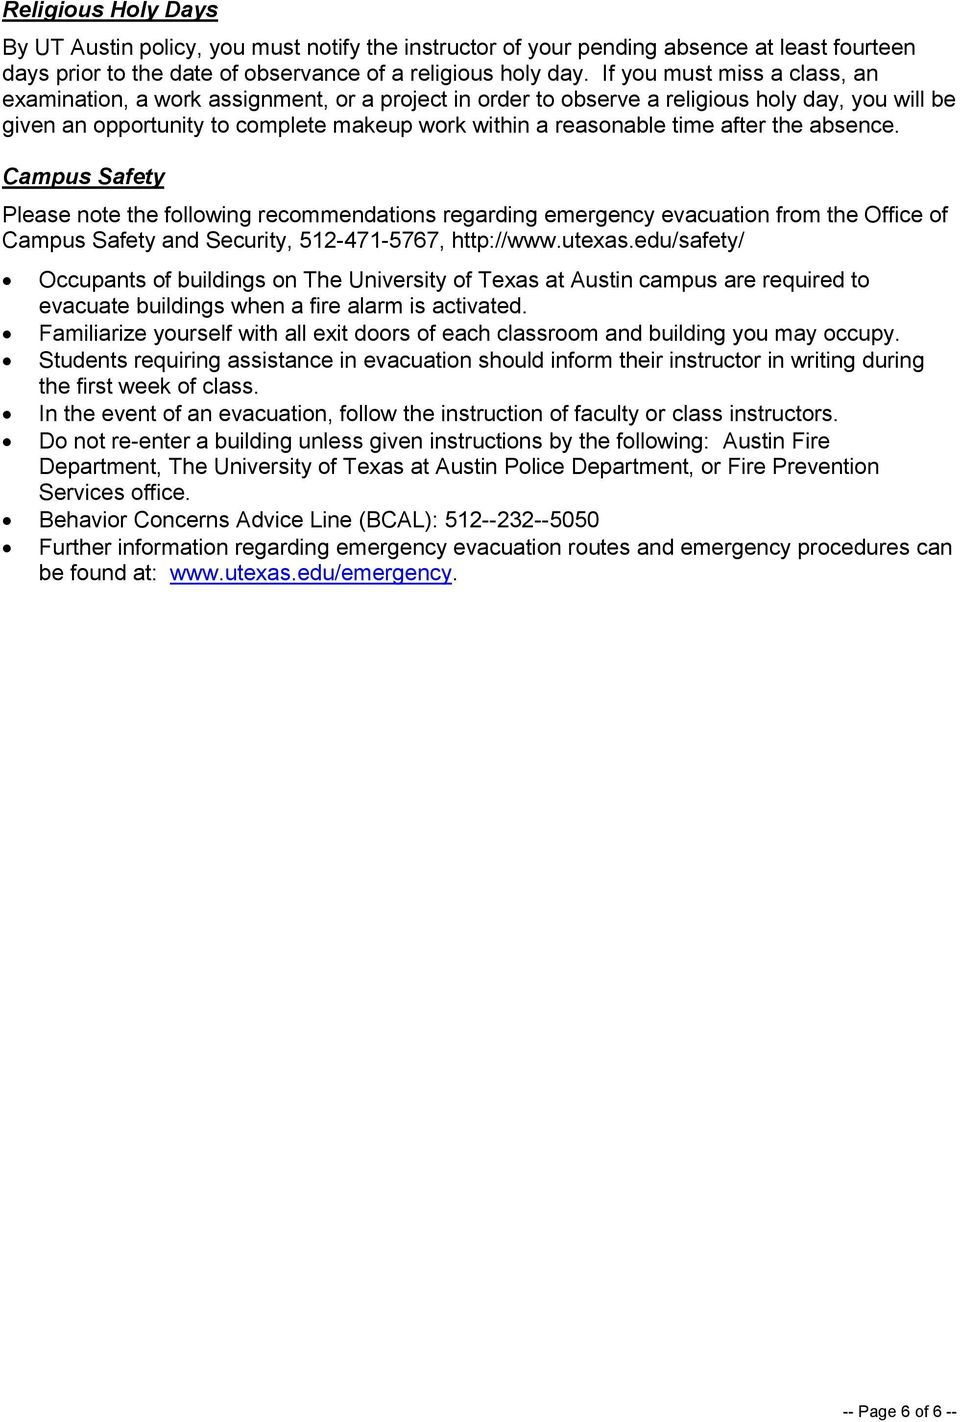 after the absence. Campus Safety Please note the following recommendations regarding emergency evacuation from the Office of Campus Safety and Security, 512 471 5767, http://www.utexas.